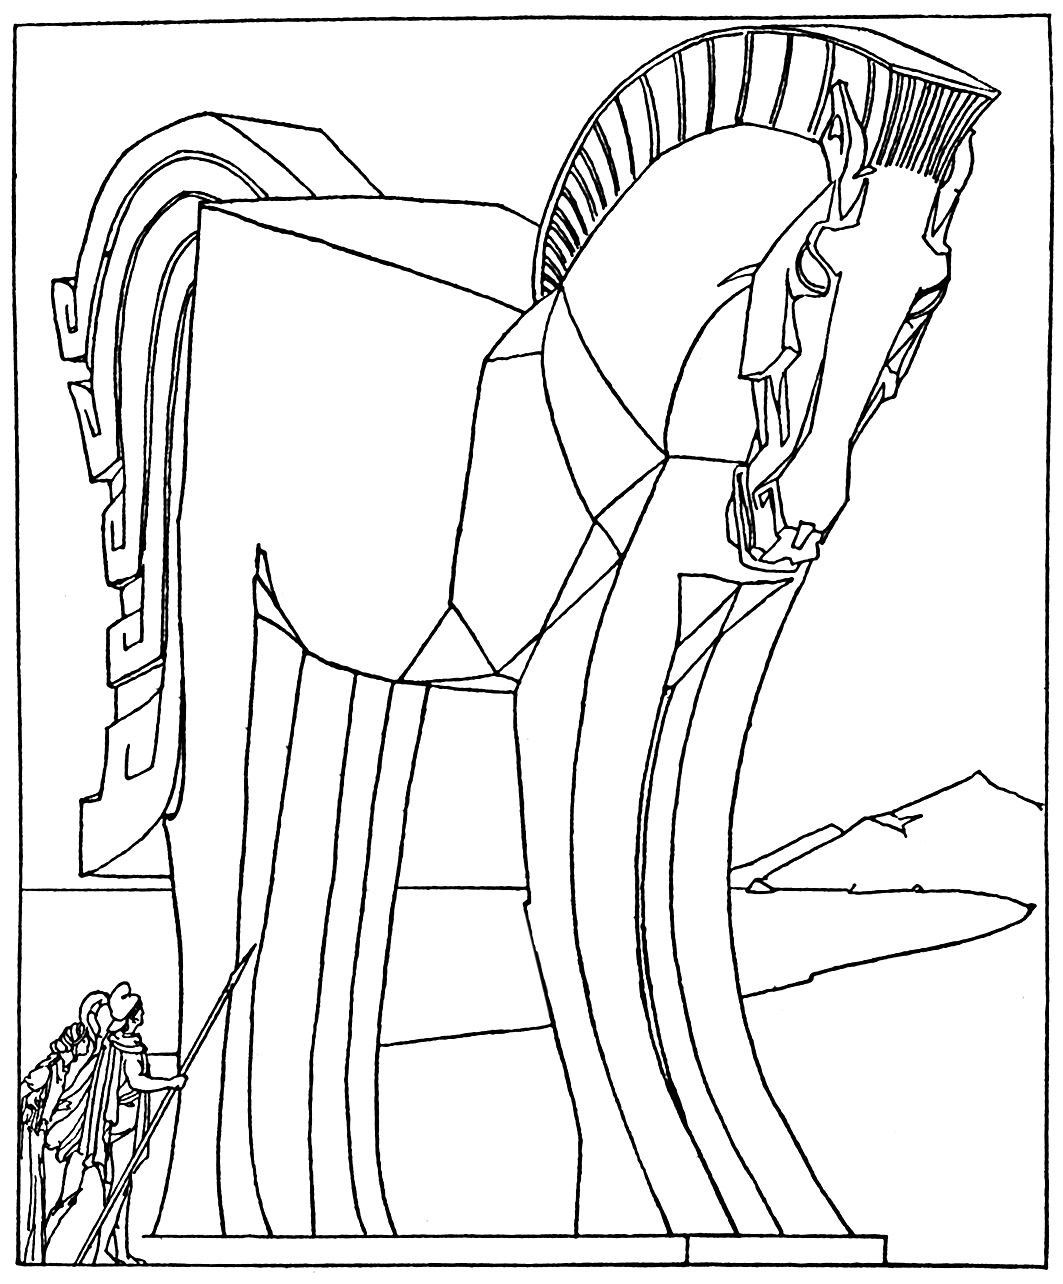 Trojan Horse Coloring Page Youngandtae Com In 2020 Horse Coloring Pages Horse Coloring Horse Coloring Books